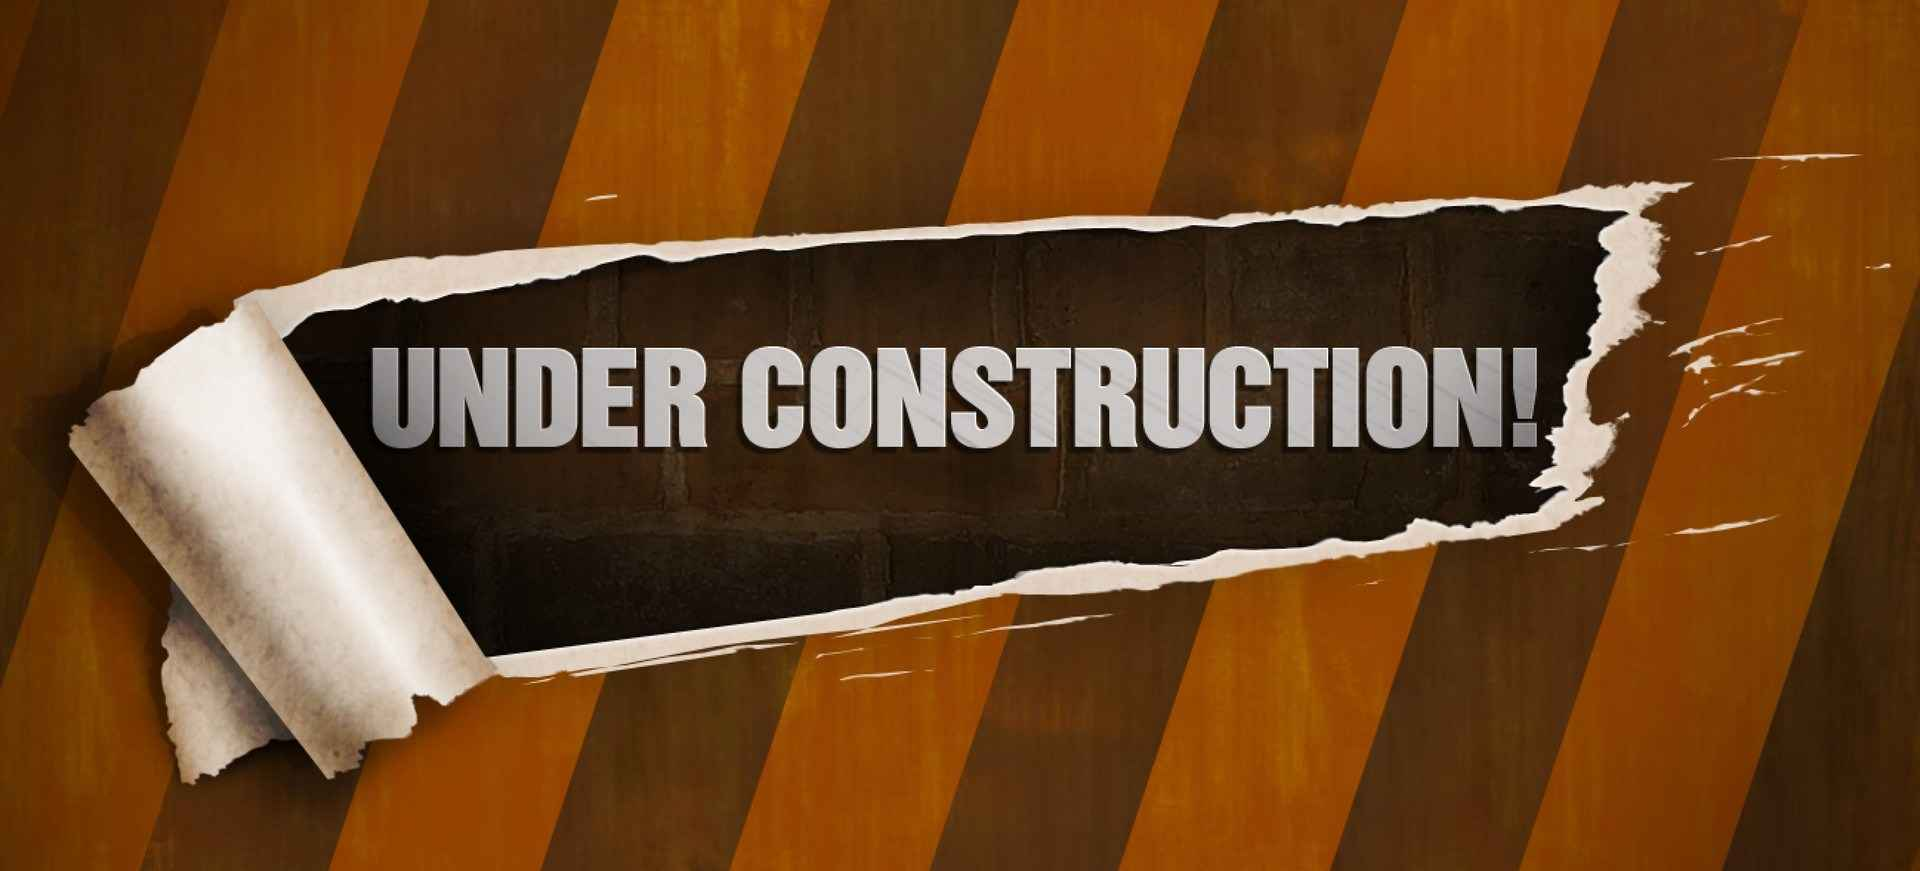 Under Construction Page PSD Template png